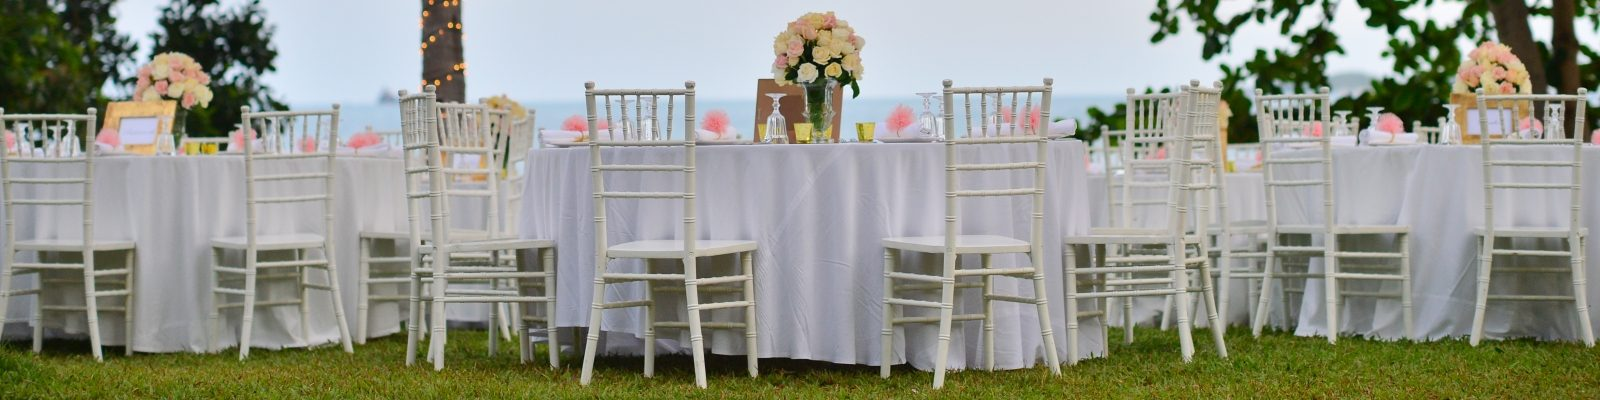 Event Rentals in Orange County